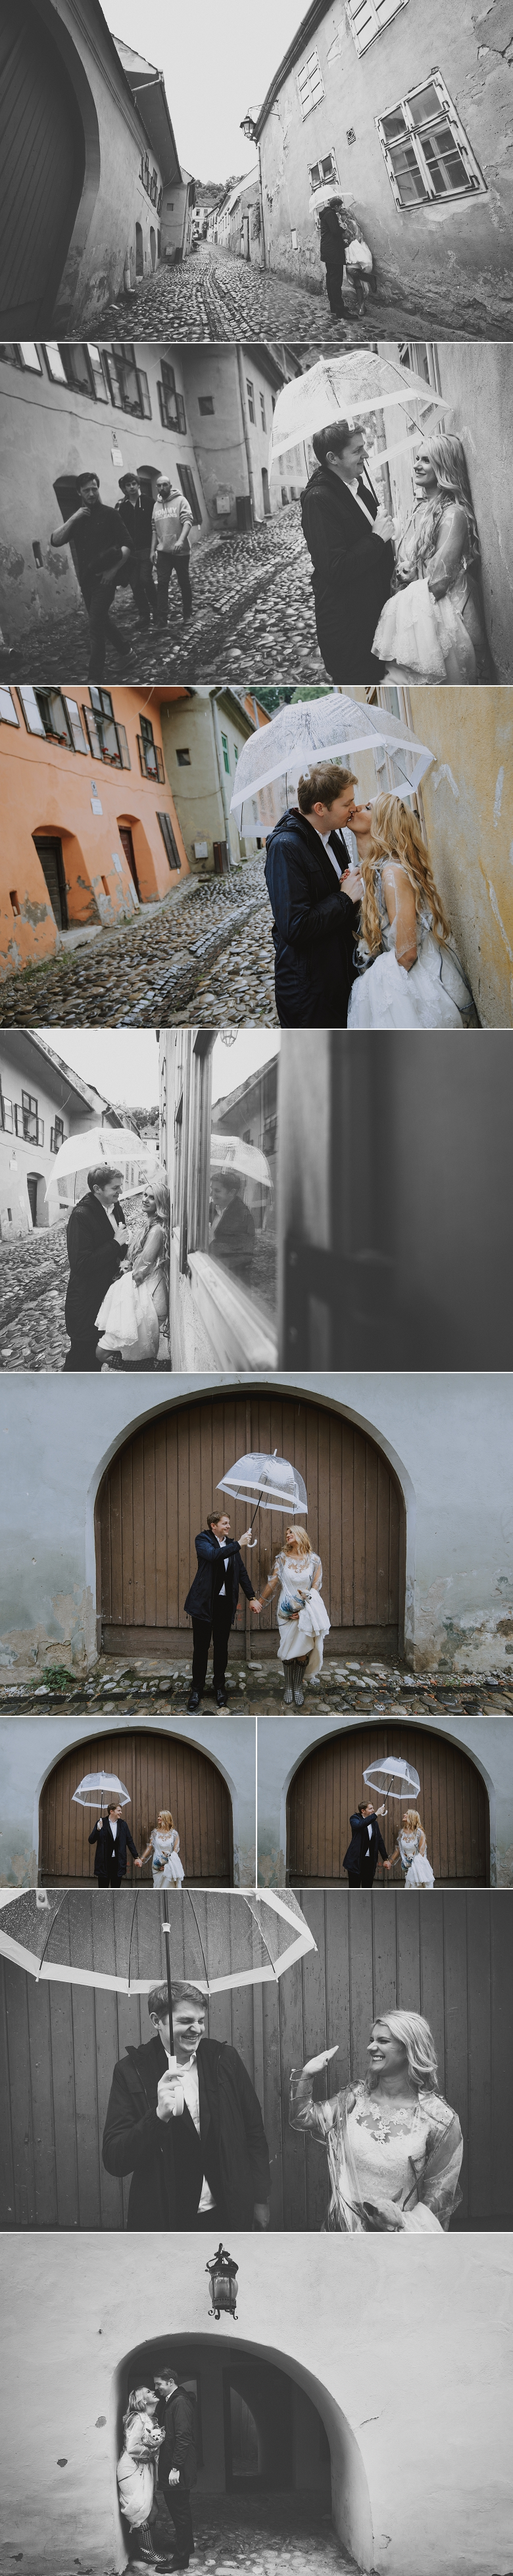 foto_video_nunta_sighisoara_after_wedding_fotograf_sighisoara-3